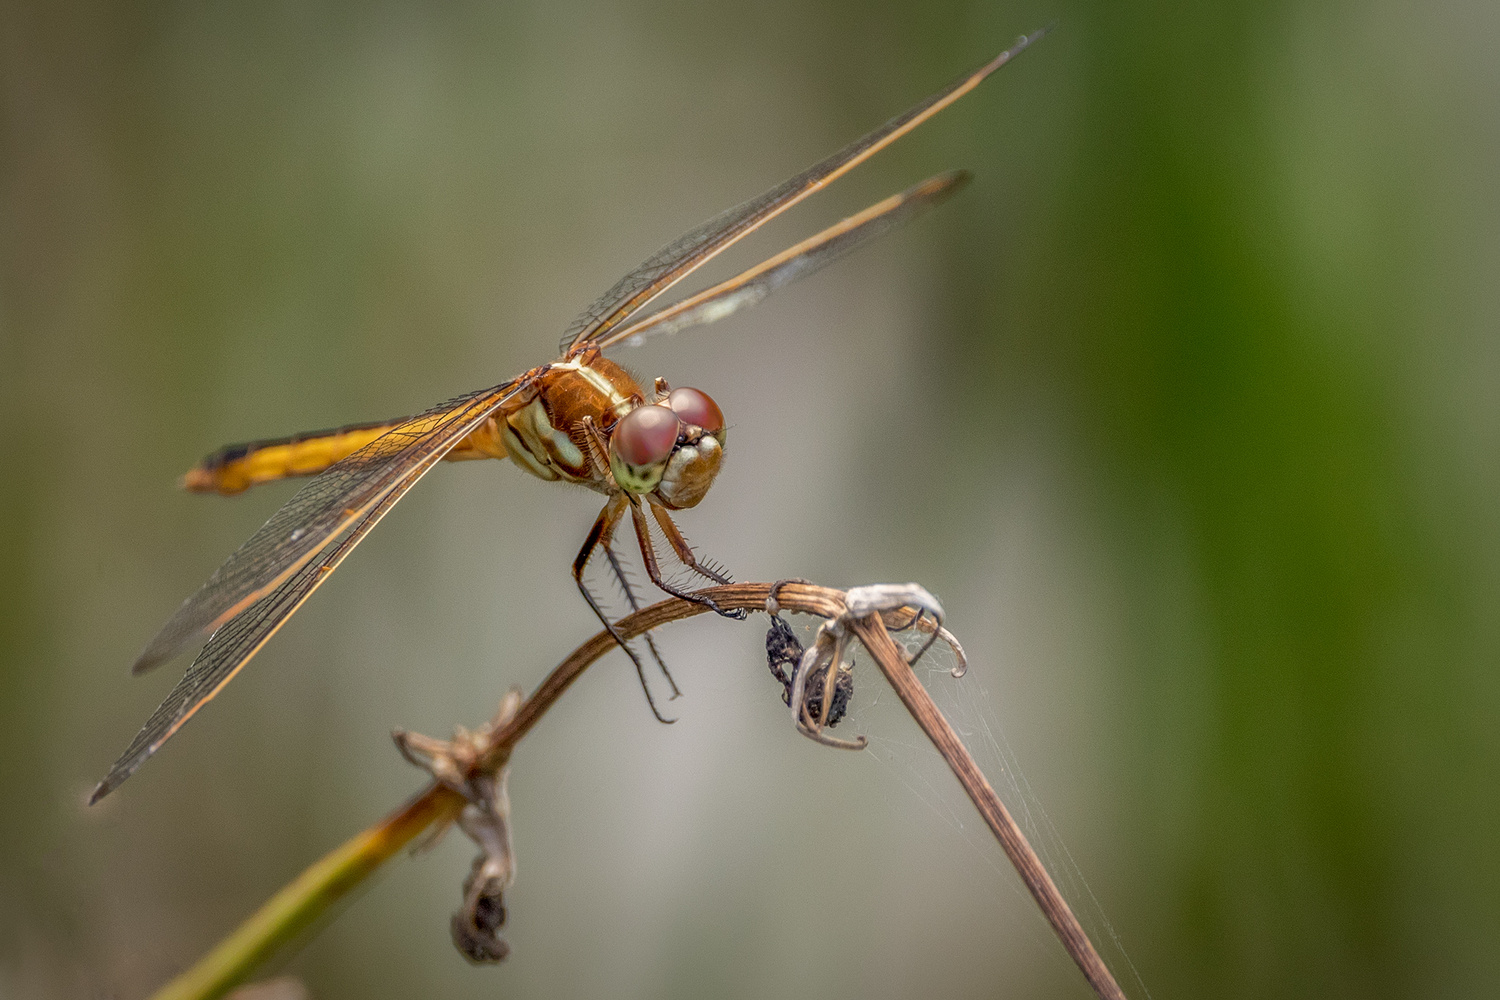 Dragonfly by David Boardman